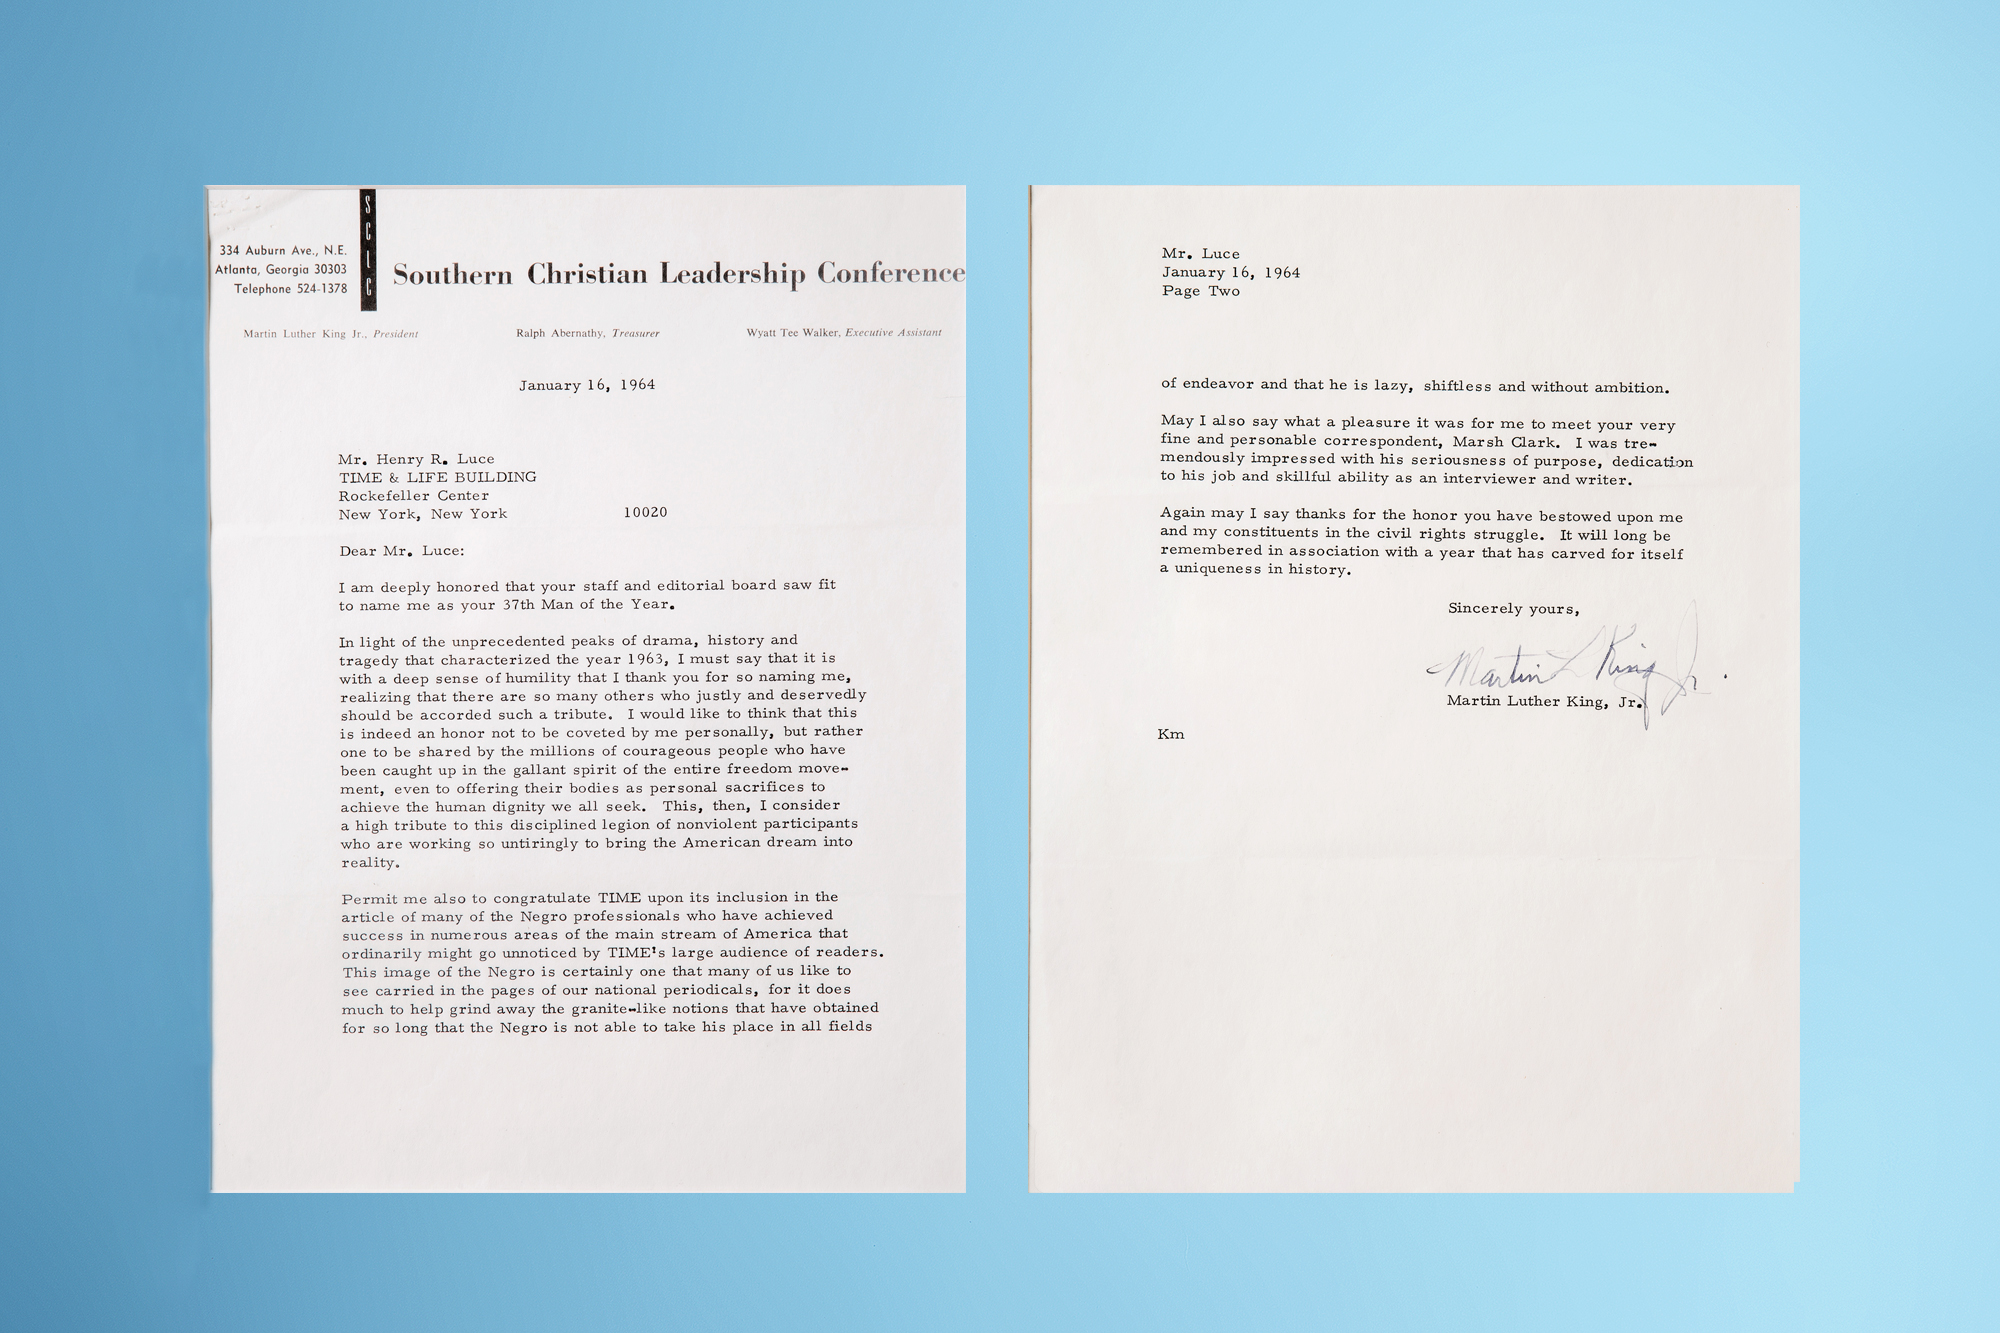 """Letter from Martin Luther King Jr. : Martin Luther King, Jr. wrote this letter thanking Henry Luce for TIME's decision to name the civil rights leader as the Man of the Year in 1963. The March on Washington had just taken place that August, where Rev. King, TIME's first black Person of the Year, delivered the famous """"I Have a Dream"""" speech."""